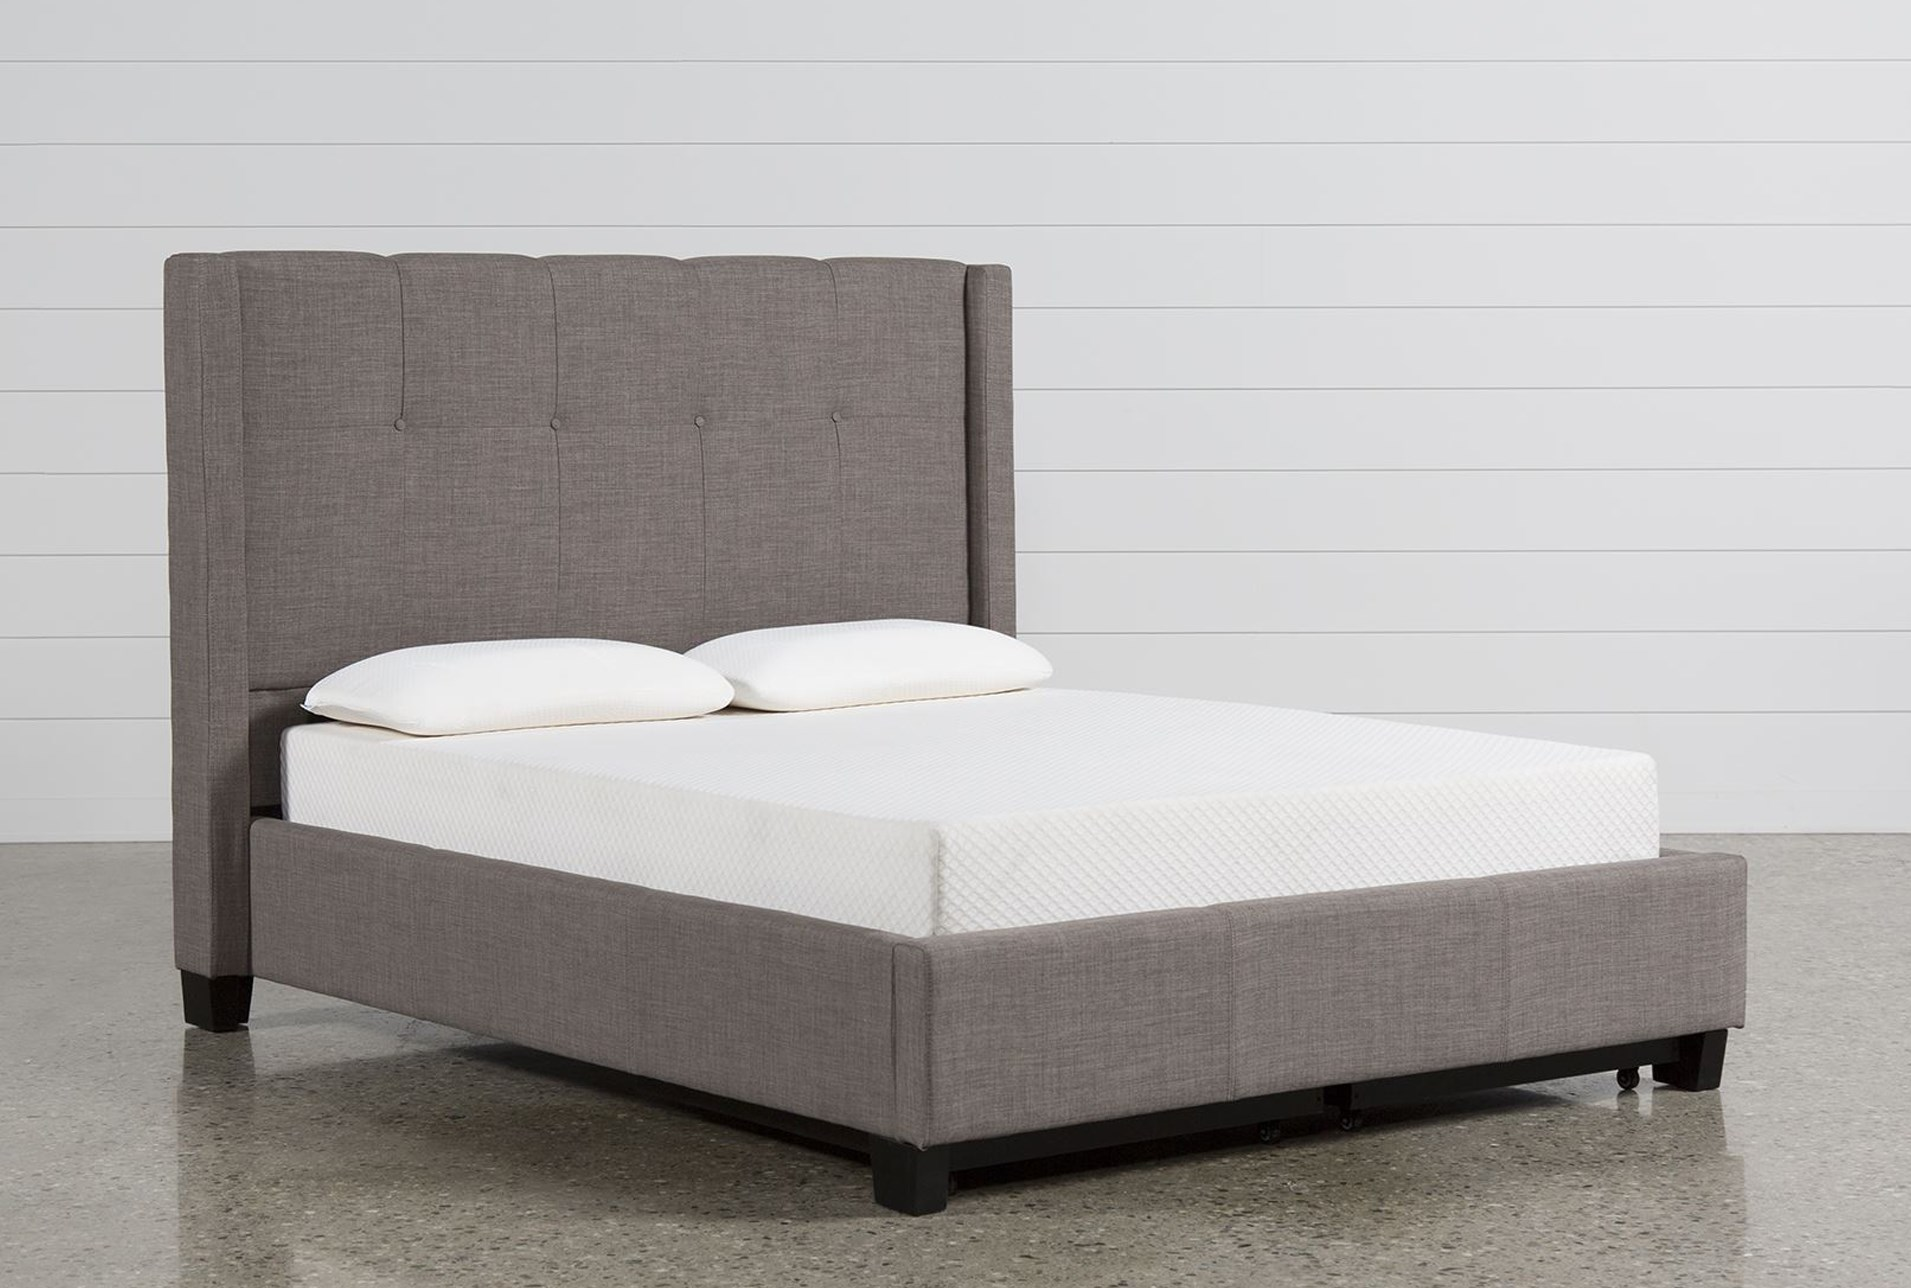 Damon Stone California King Upholstered Platform Bed W Storage Qty 1 Has Been Successfully Added To Your Cart